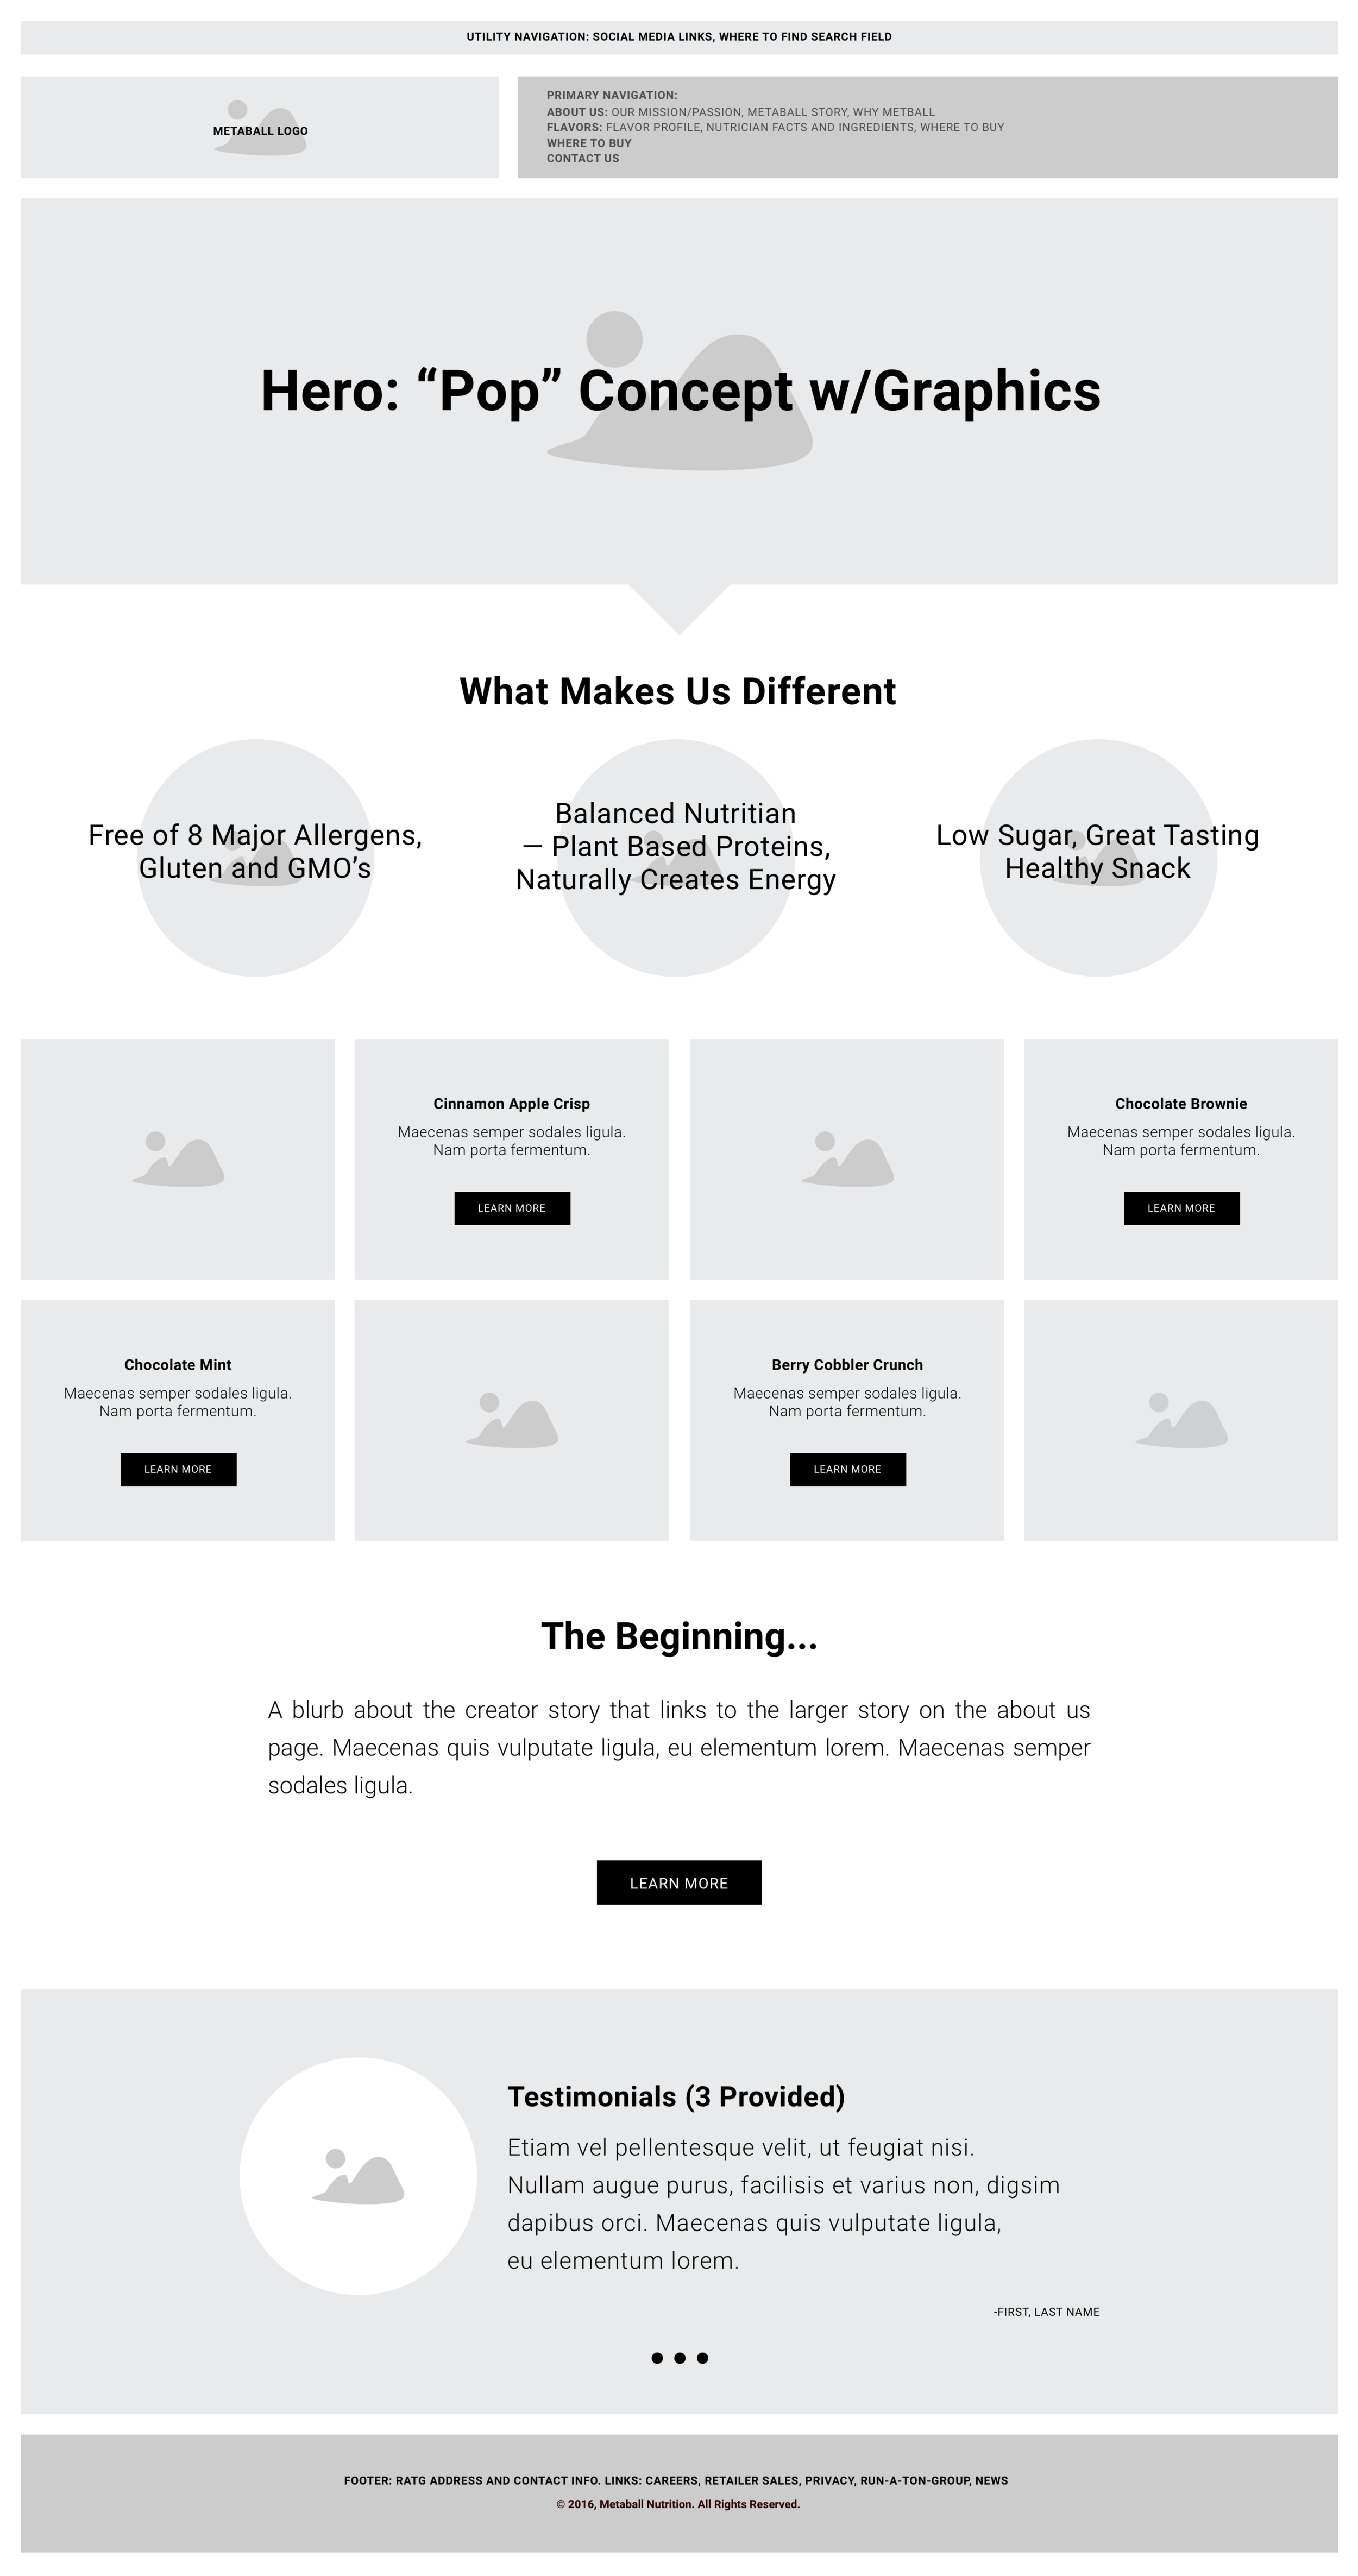 Homepage - Content Blocking@2x.png